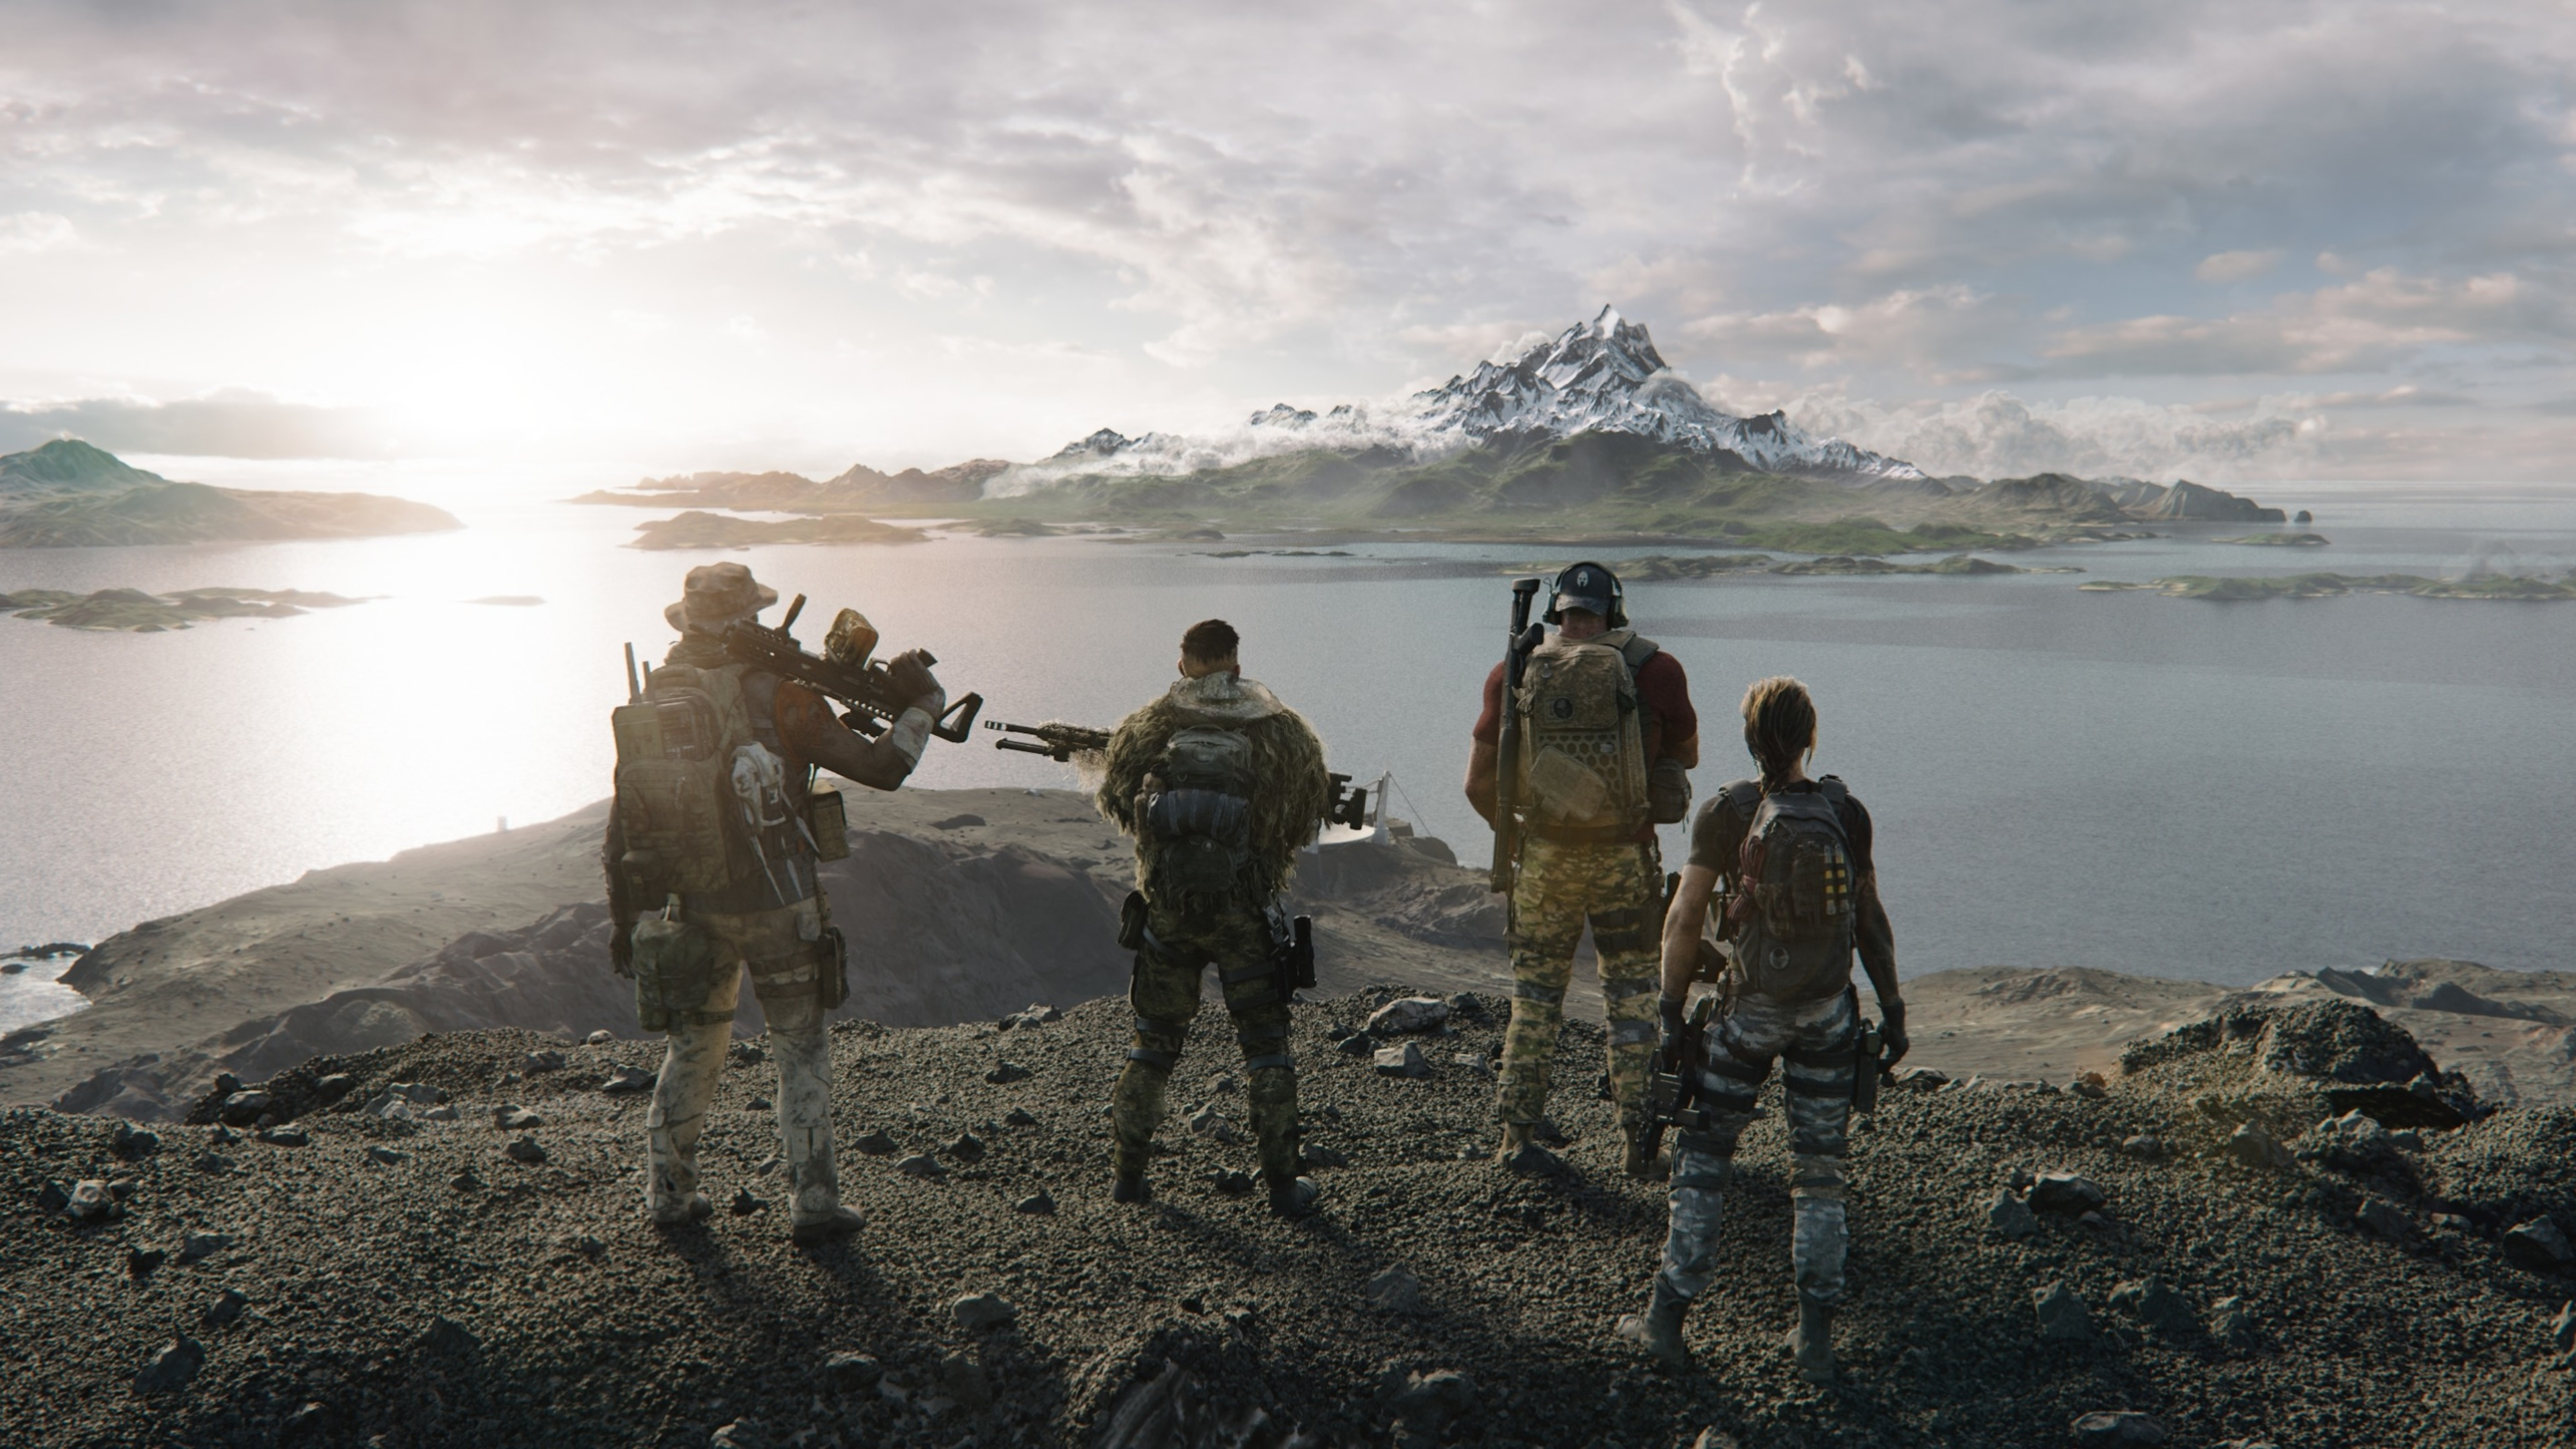 2019 tom clancys ghost recon breakpoint 4k 1558221873 - 2019 Tom Clancys Ghost Recon Breakpoint 4k - tom clancys ghost recon breakpoint wallpapers, hd-wallpapers, games wallpapers, 4k-wallpapers, 2019 games wallpapers